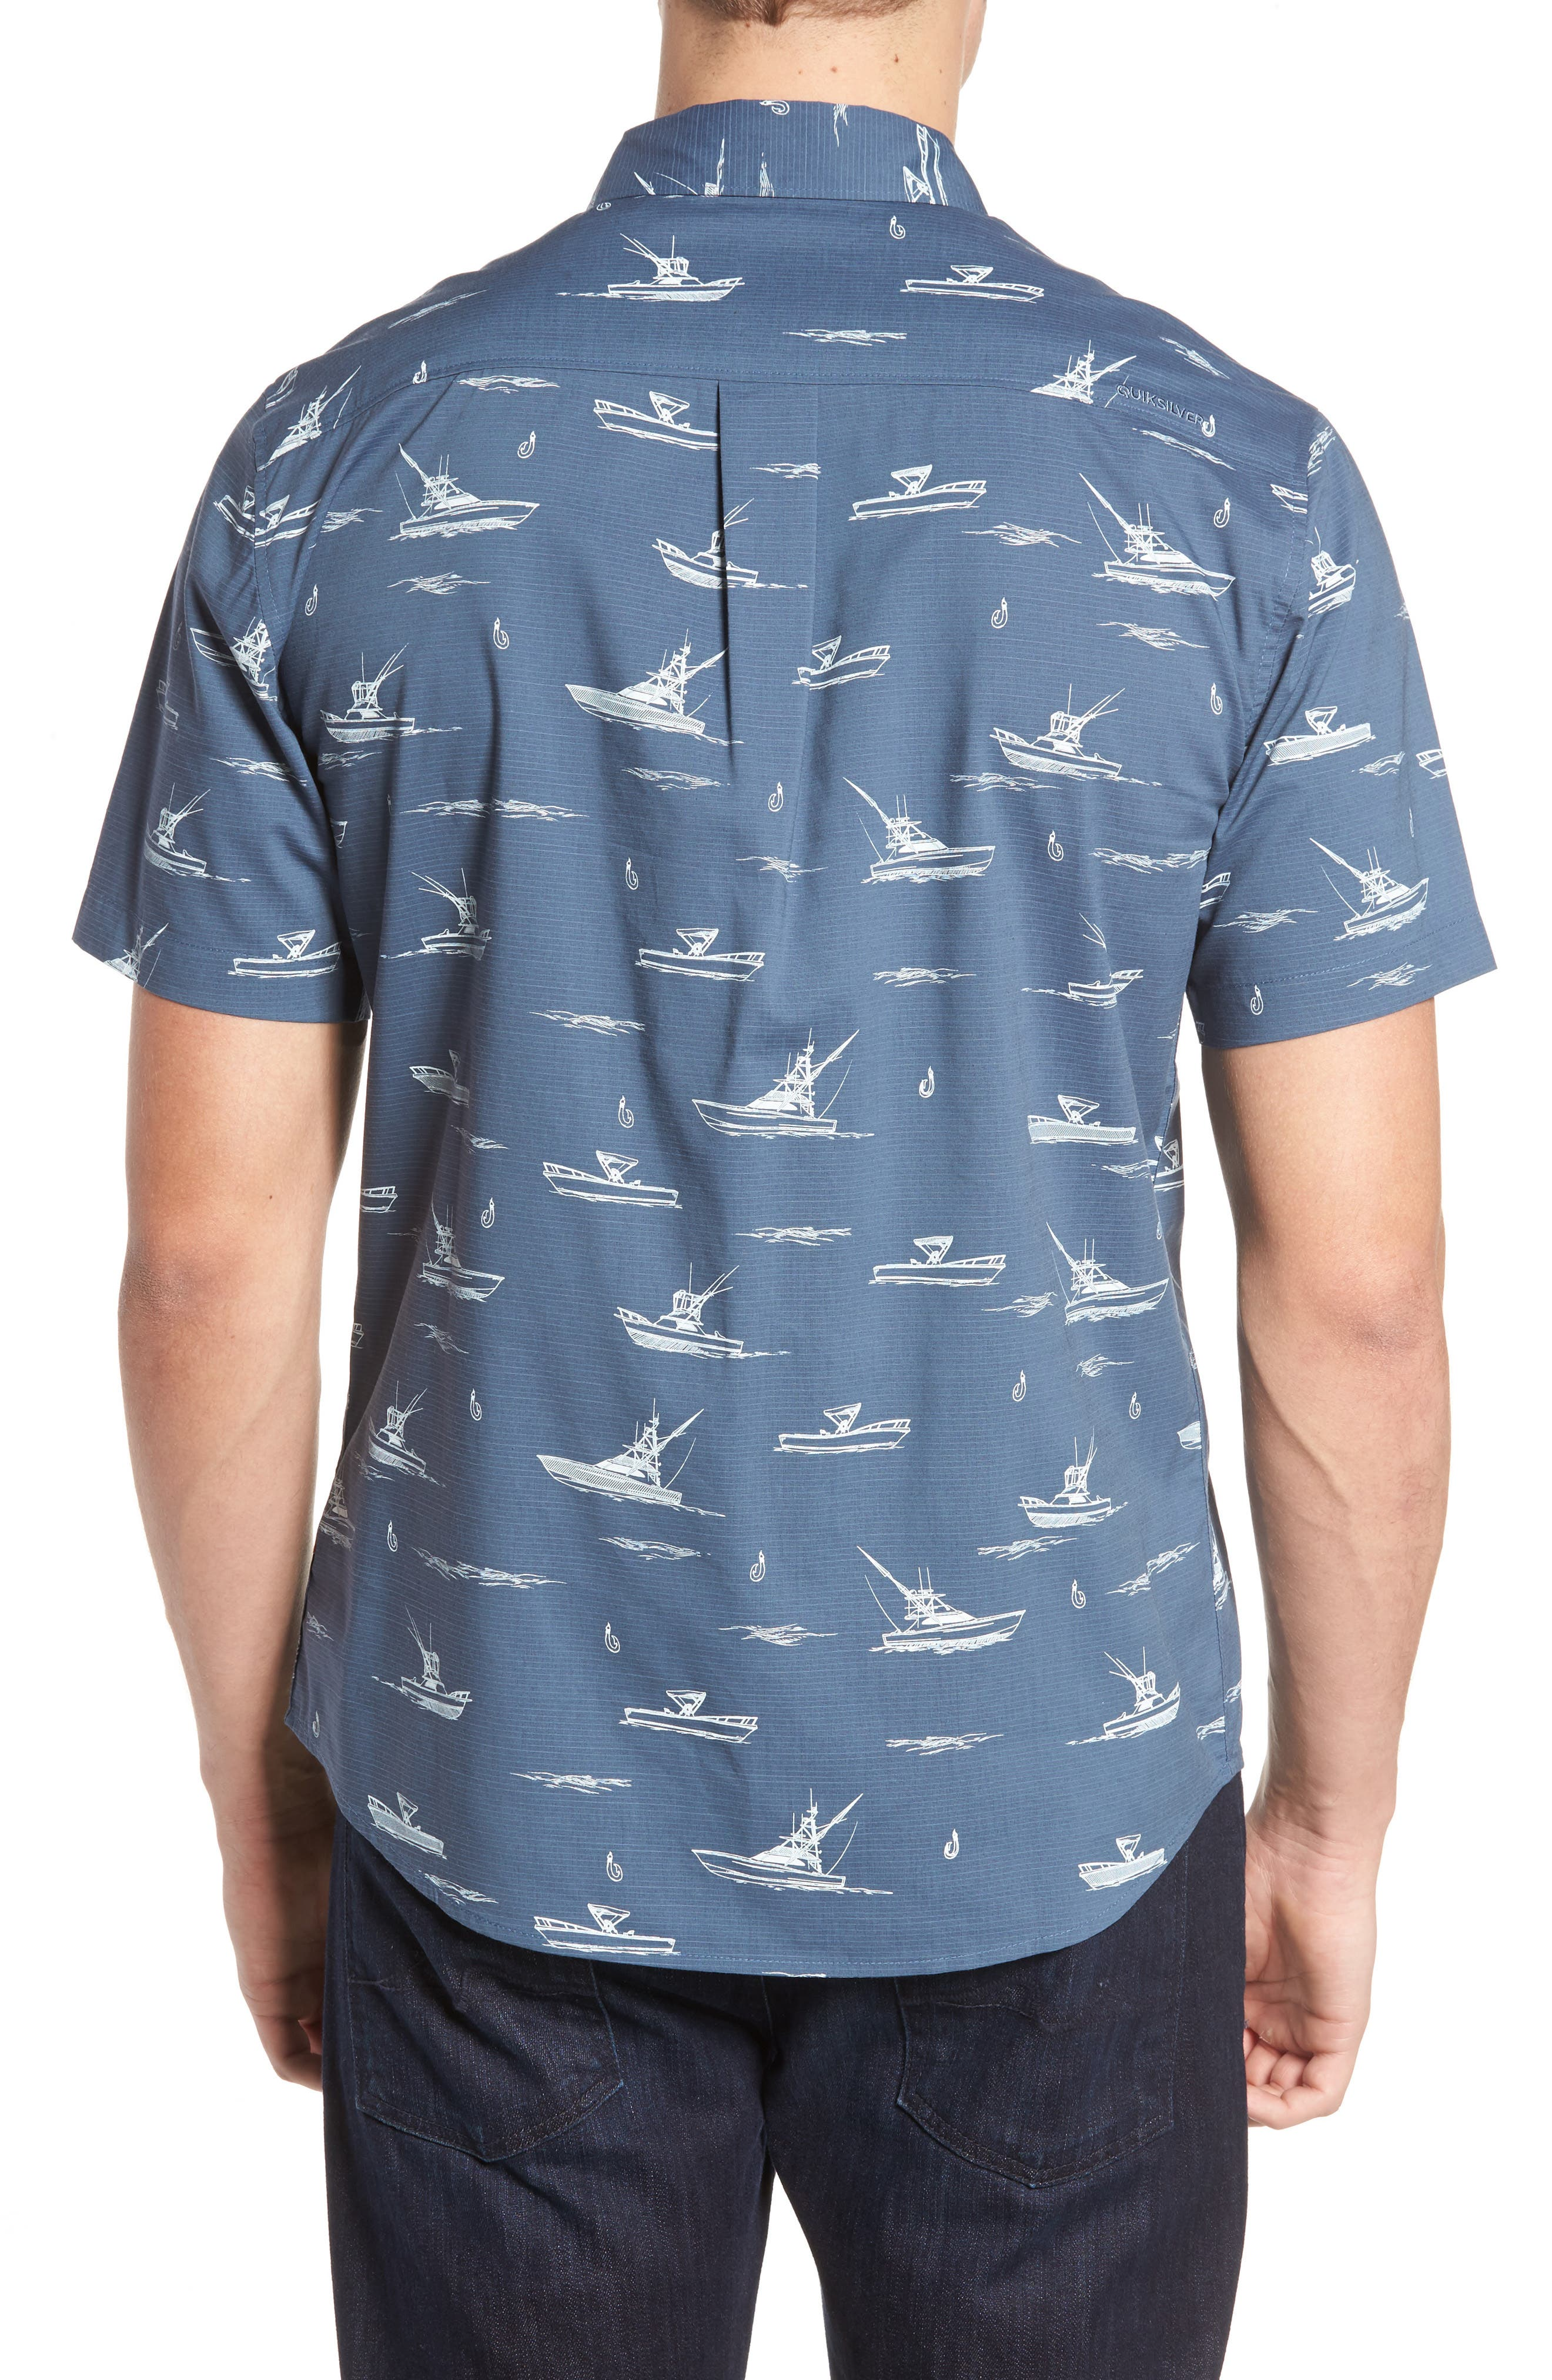 Fishboats Sport Shirt,                             Alternate thumbnail 2, color,                             Ensign Blue